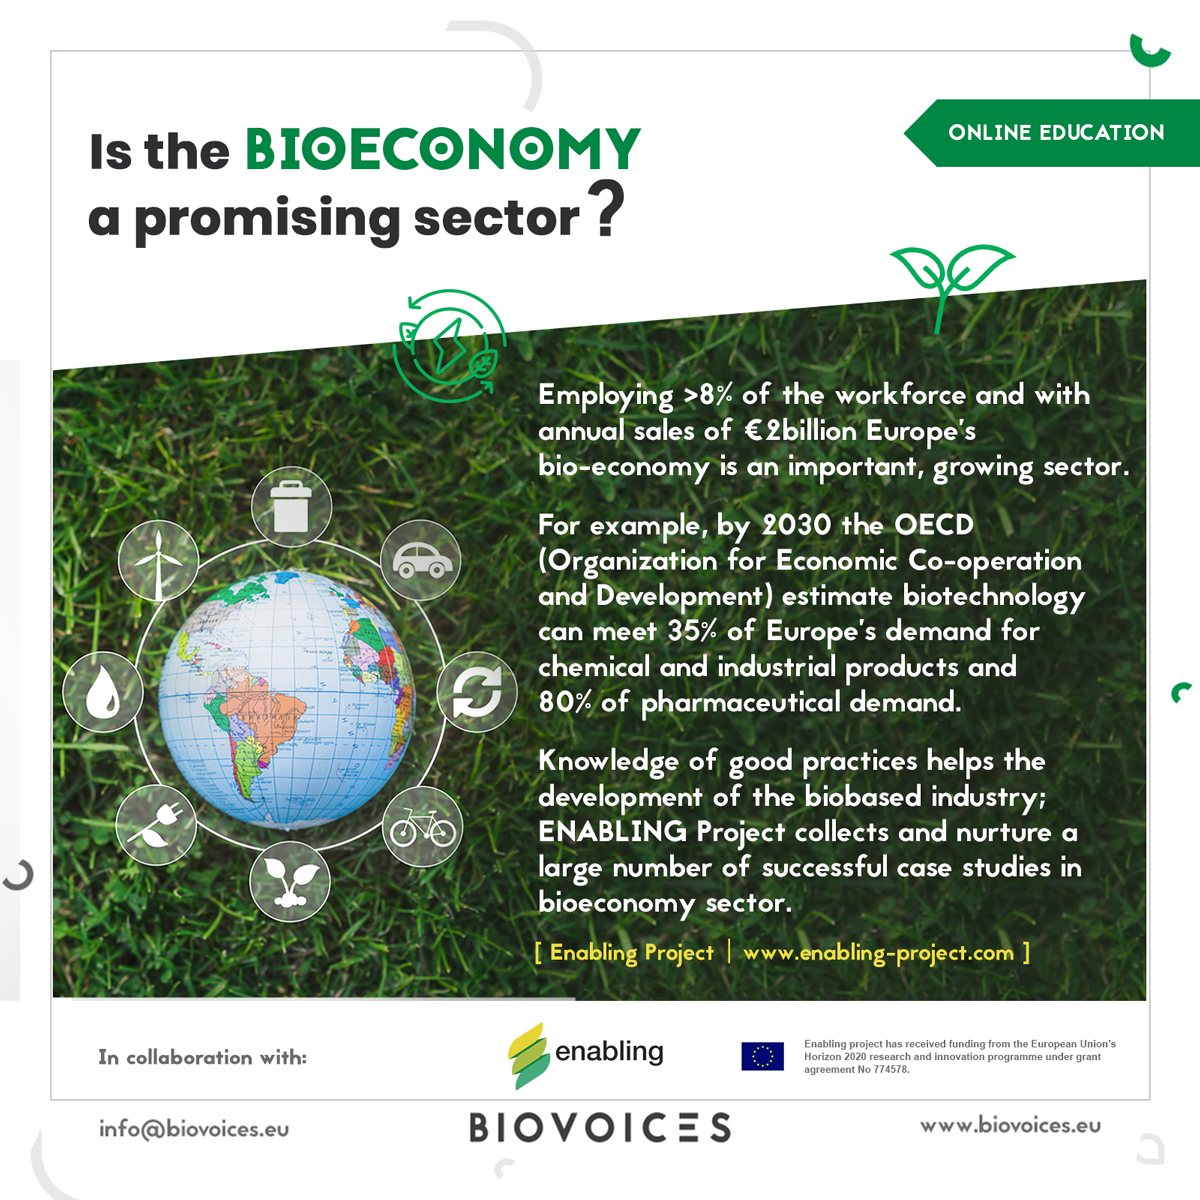 Is the bioeconomy a promising sector?